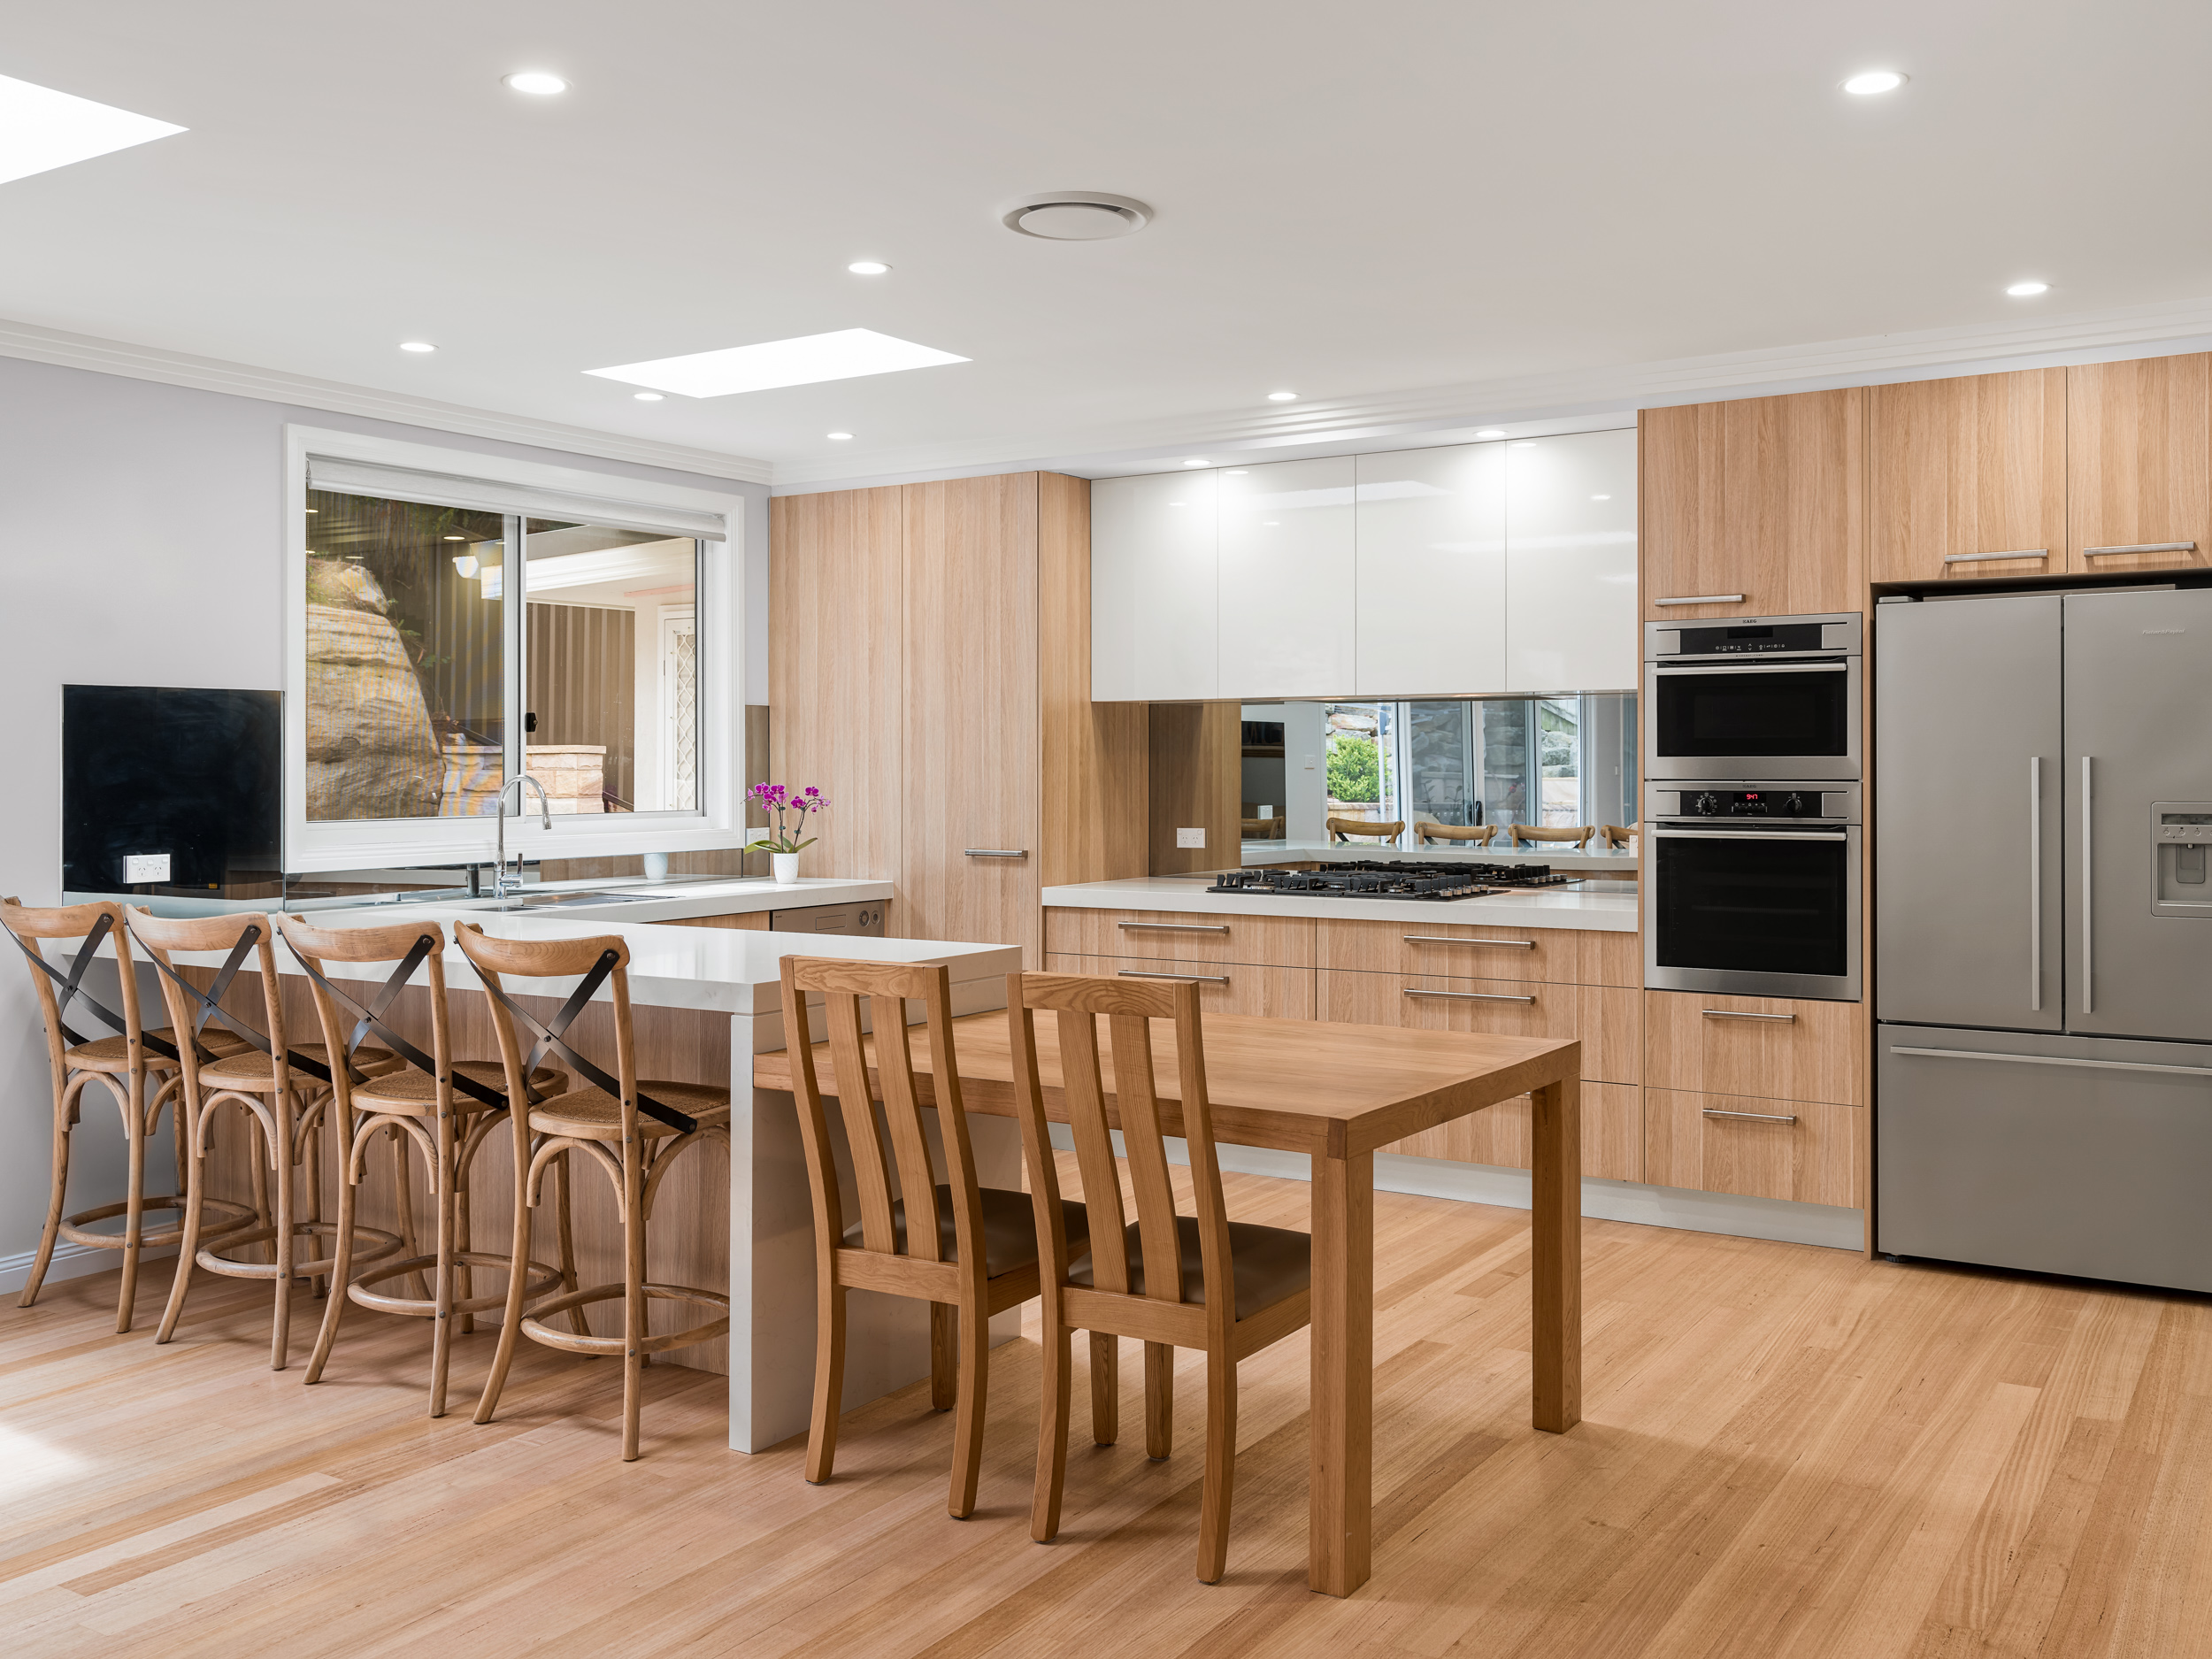 Balnei & Colina kitchen